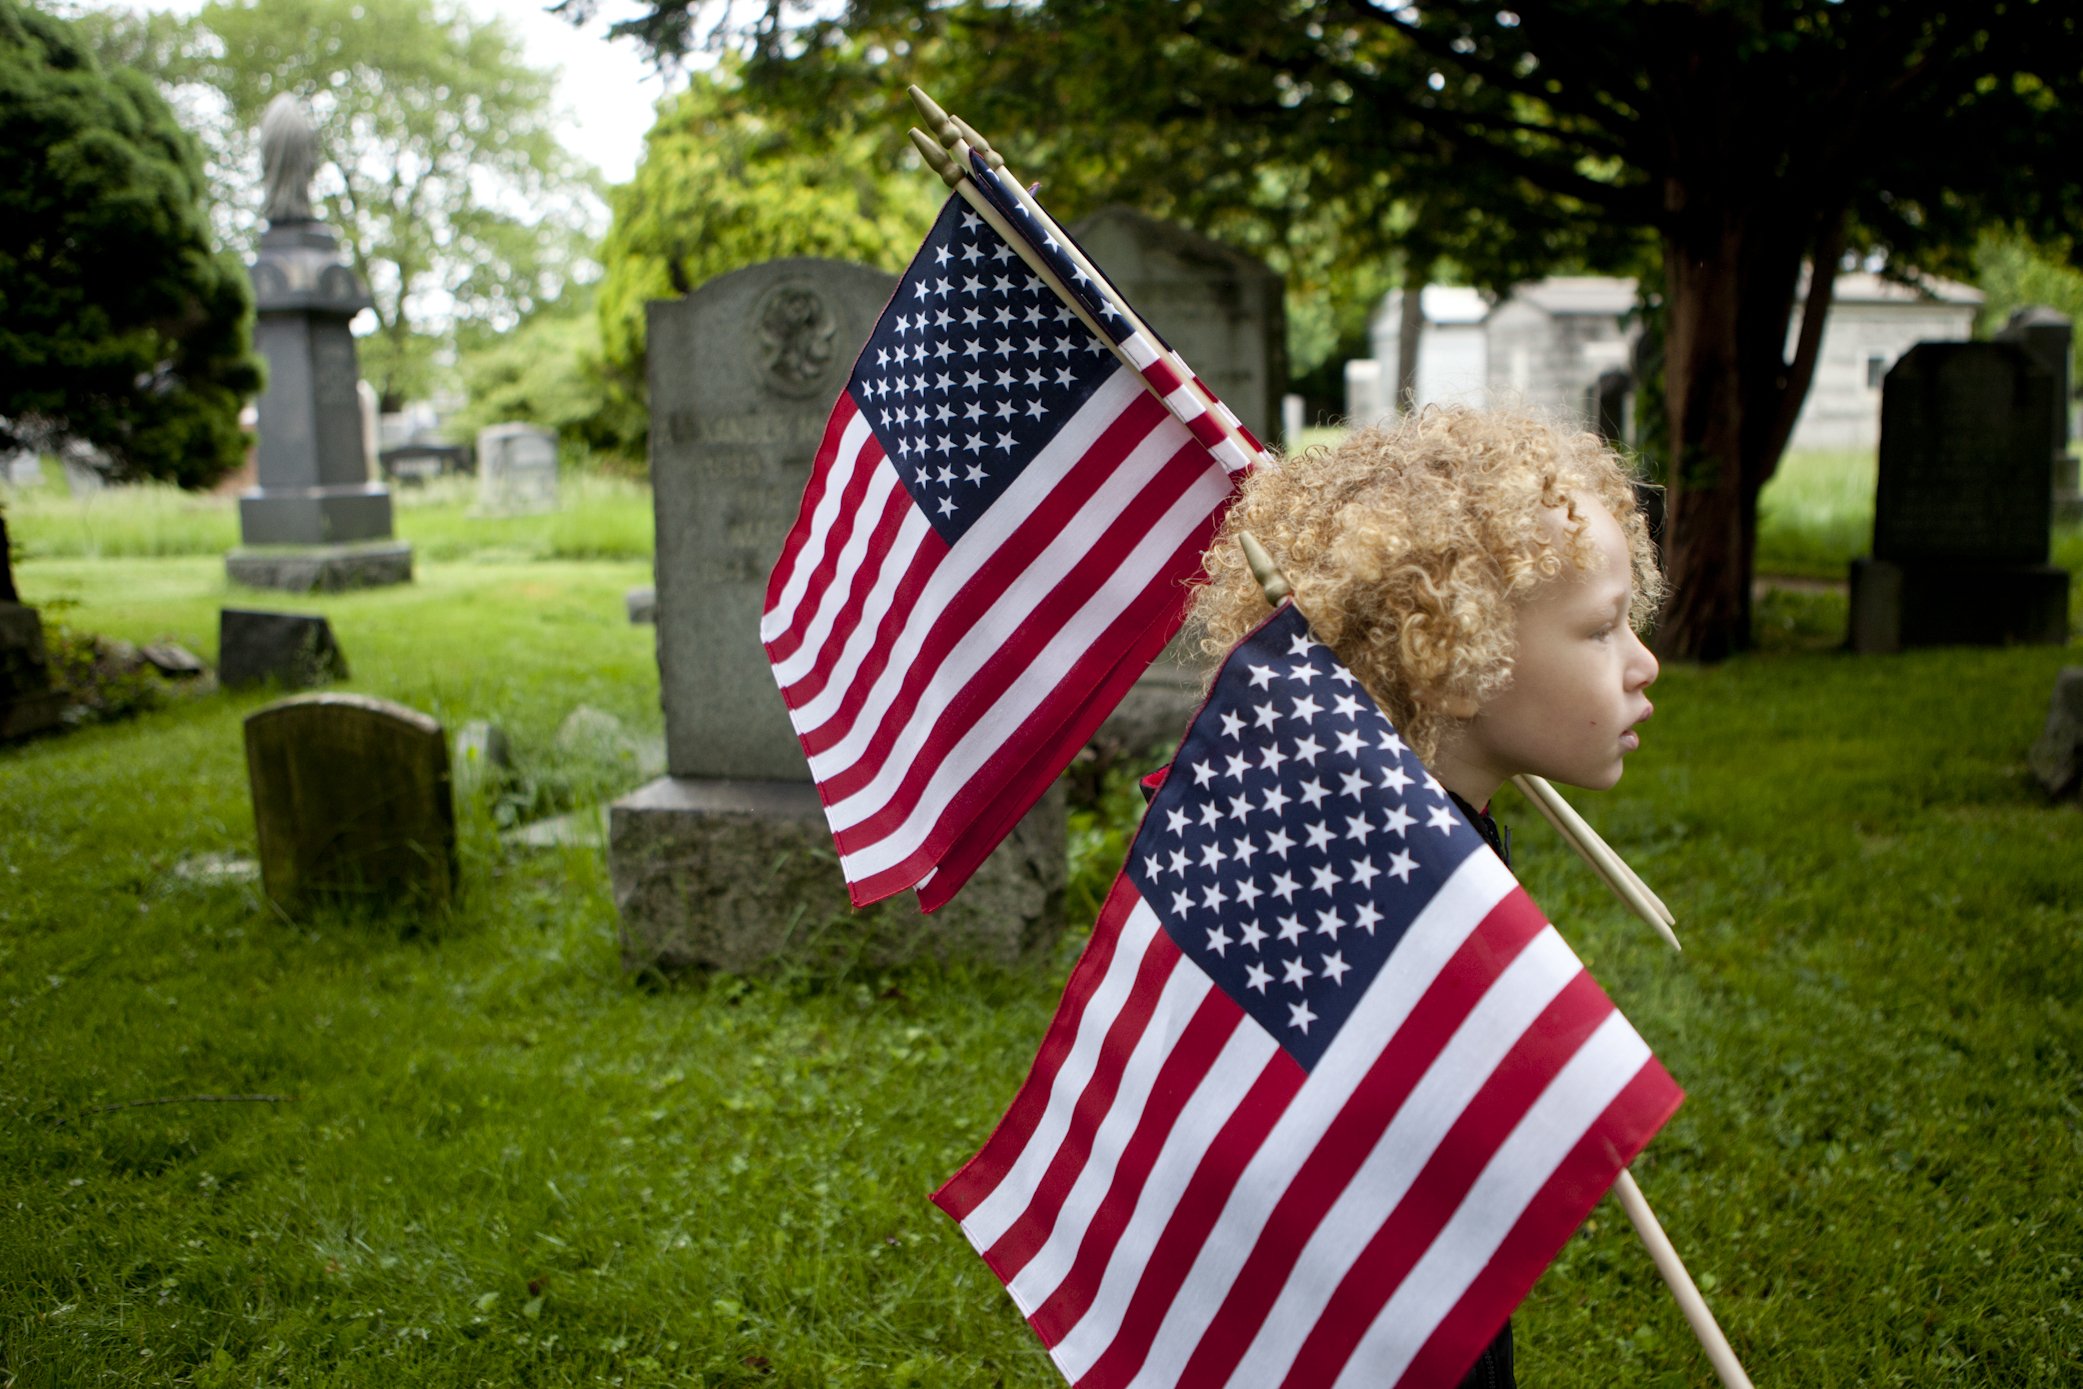 Jahvanni Gifford, 4, carries flags to place at veteran's graves on Memorial Day at Bayview Cemetery in Jersey City. Roughly a dozen service members and thirty children representing various scout troops came together to honor the veterans.